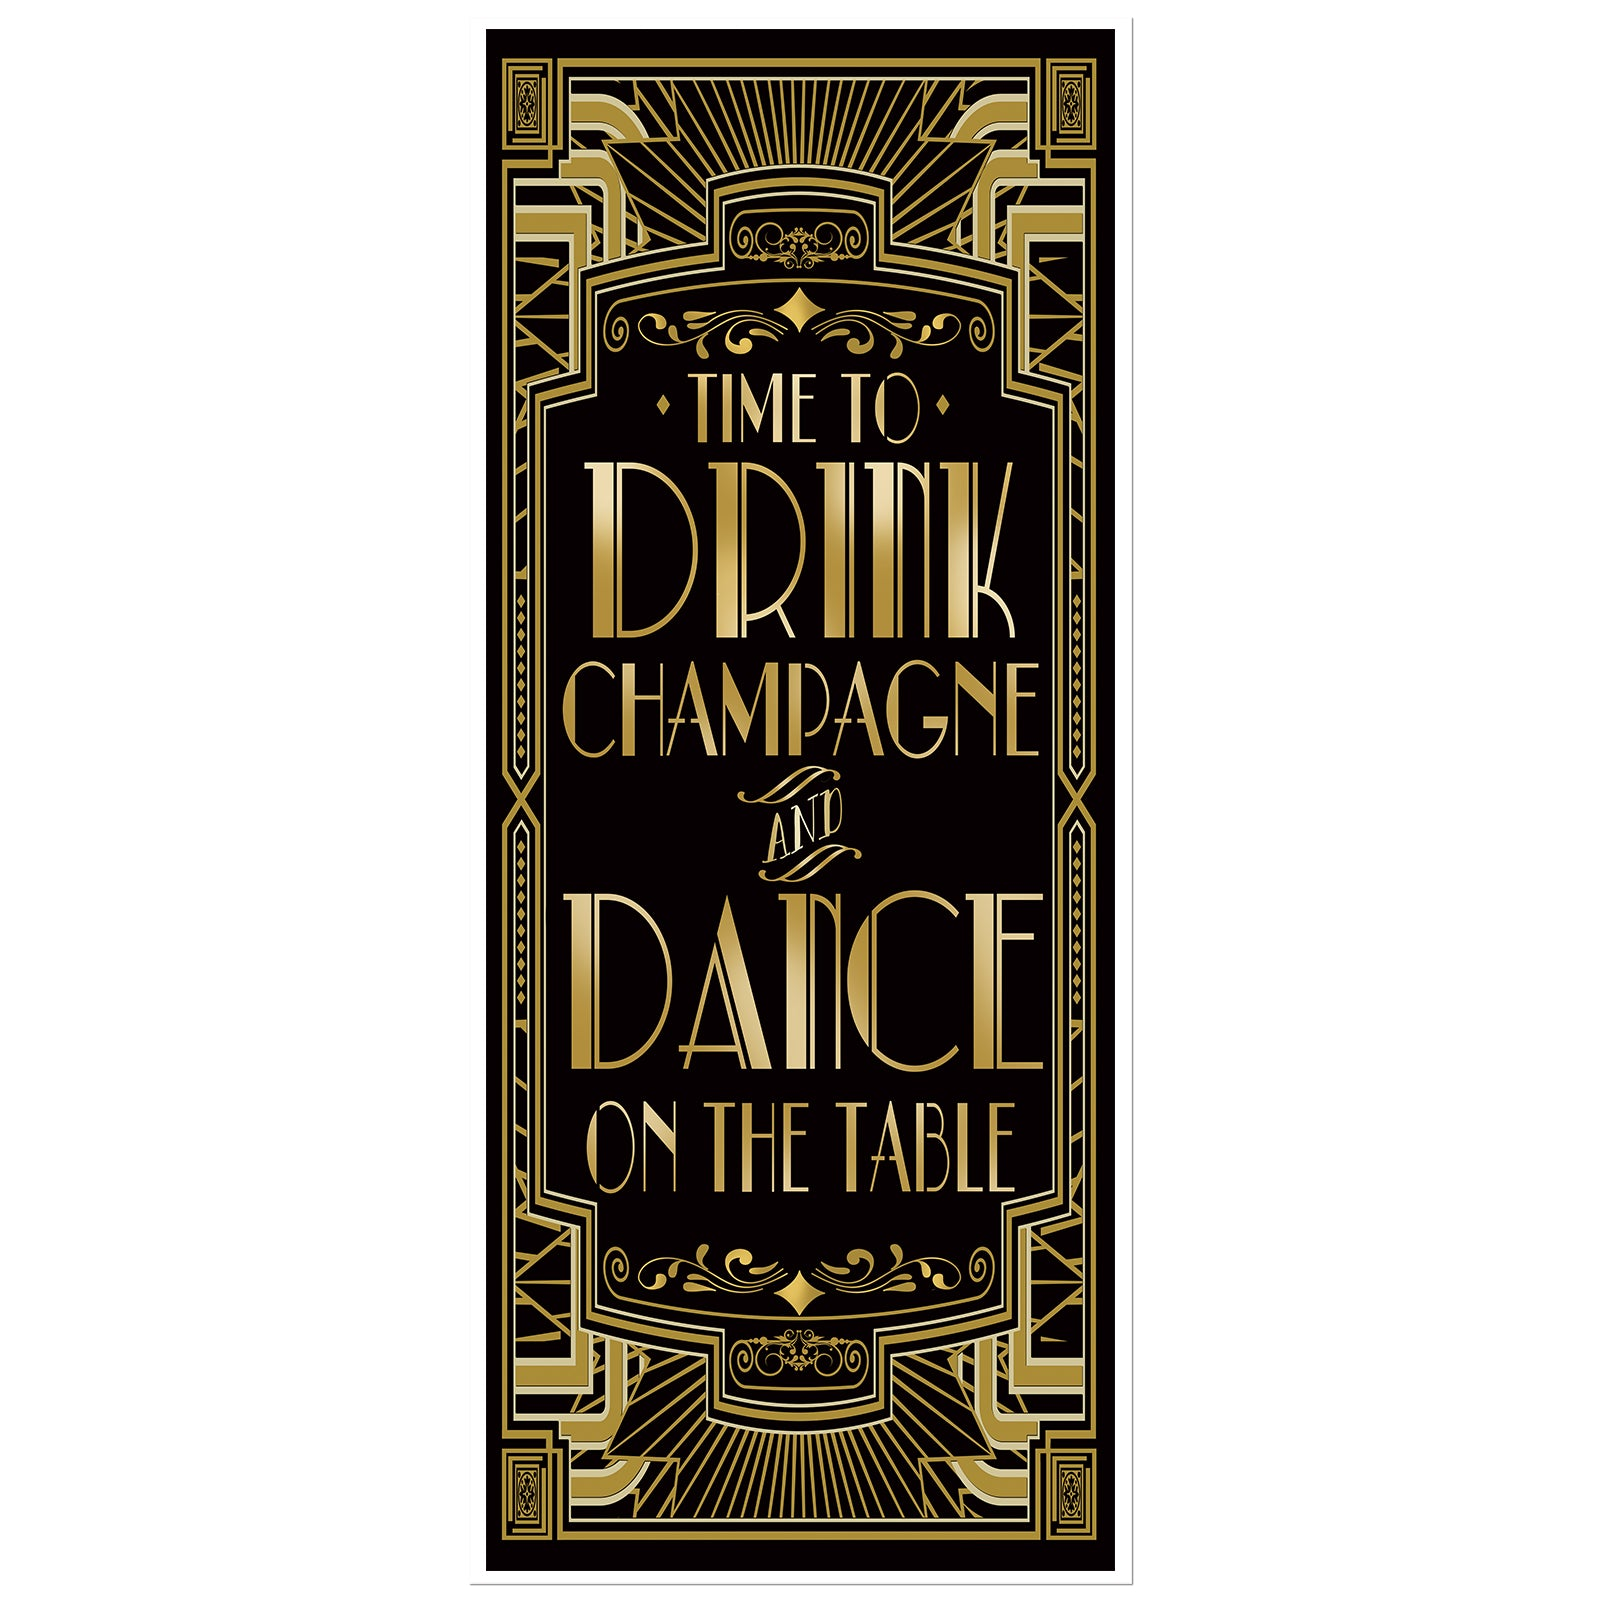 Roaring 20s Gatsby Door Cover|Time to Drink Champagne & Dance on the Table|72x30inch